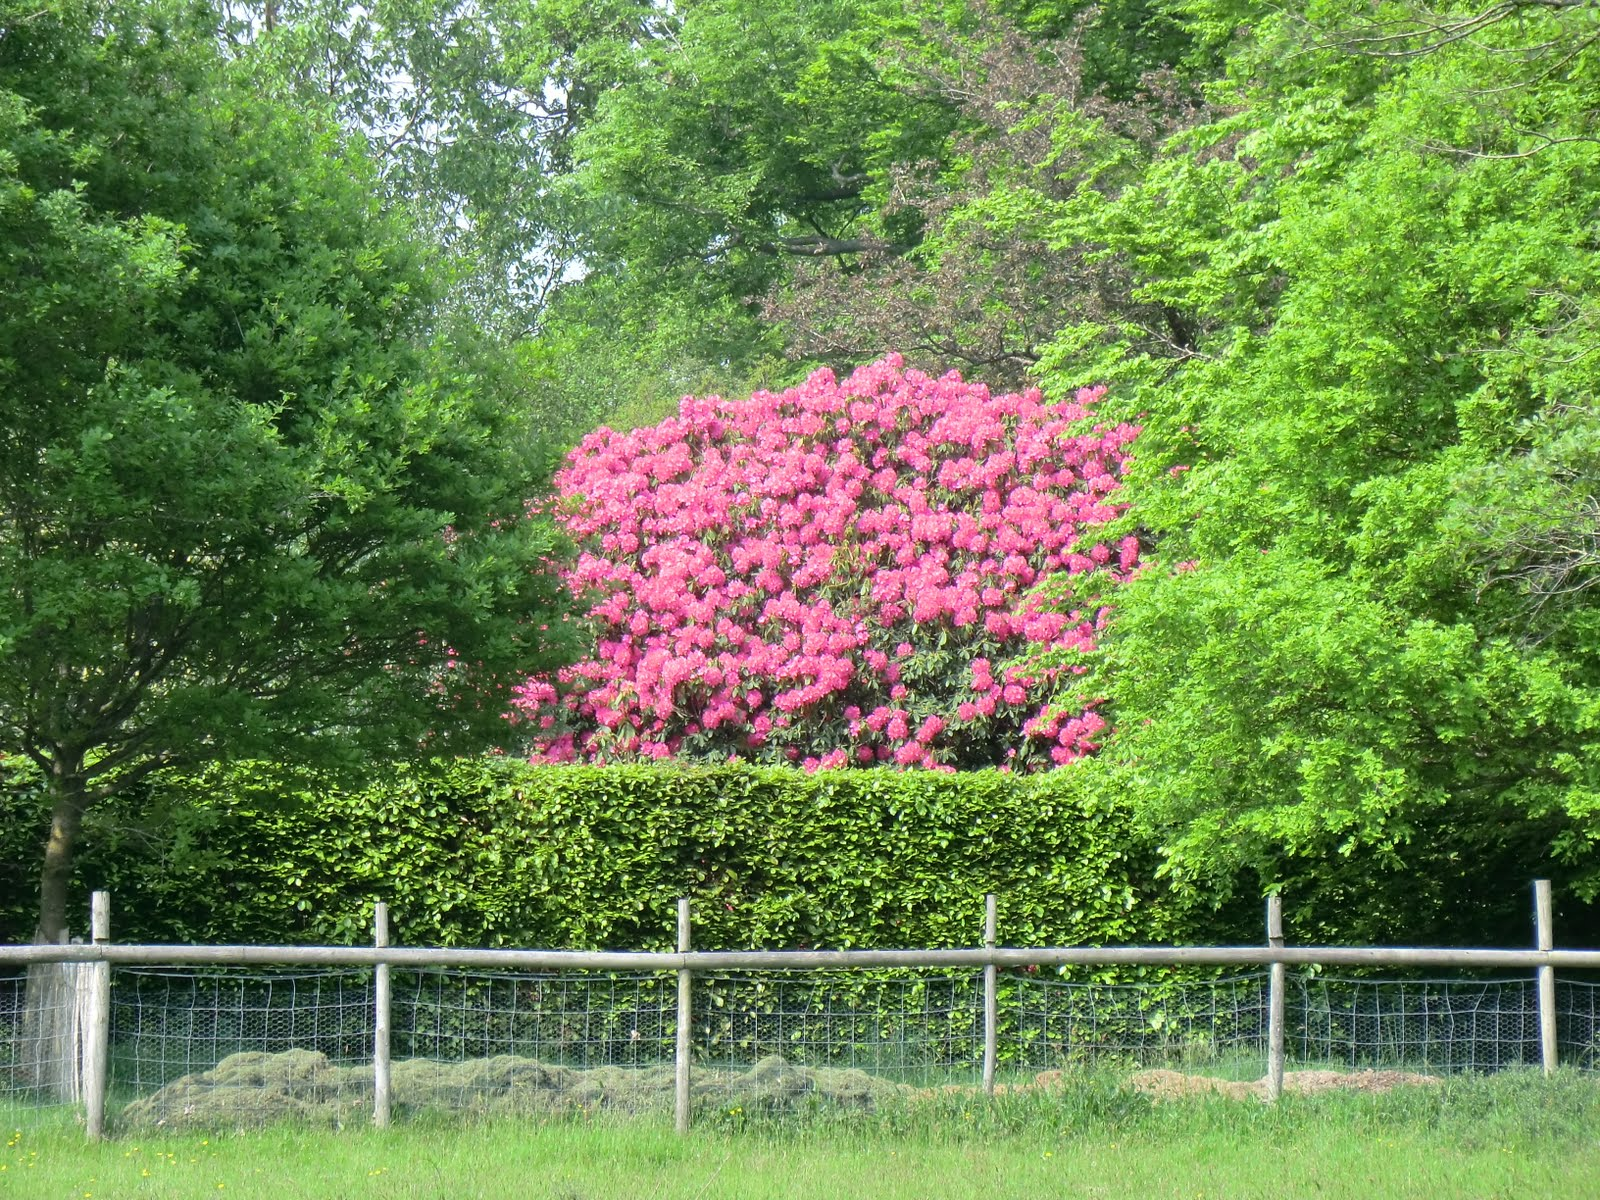 CIMG2966 Rhododendrons at Tremaines